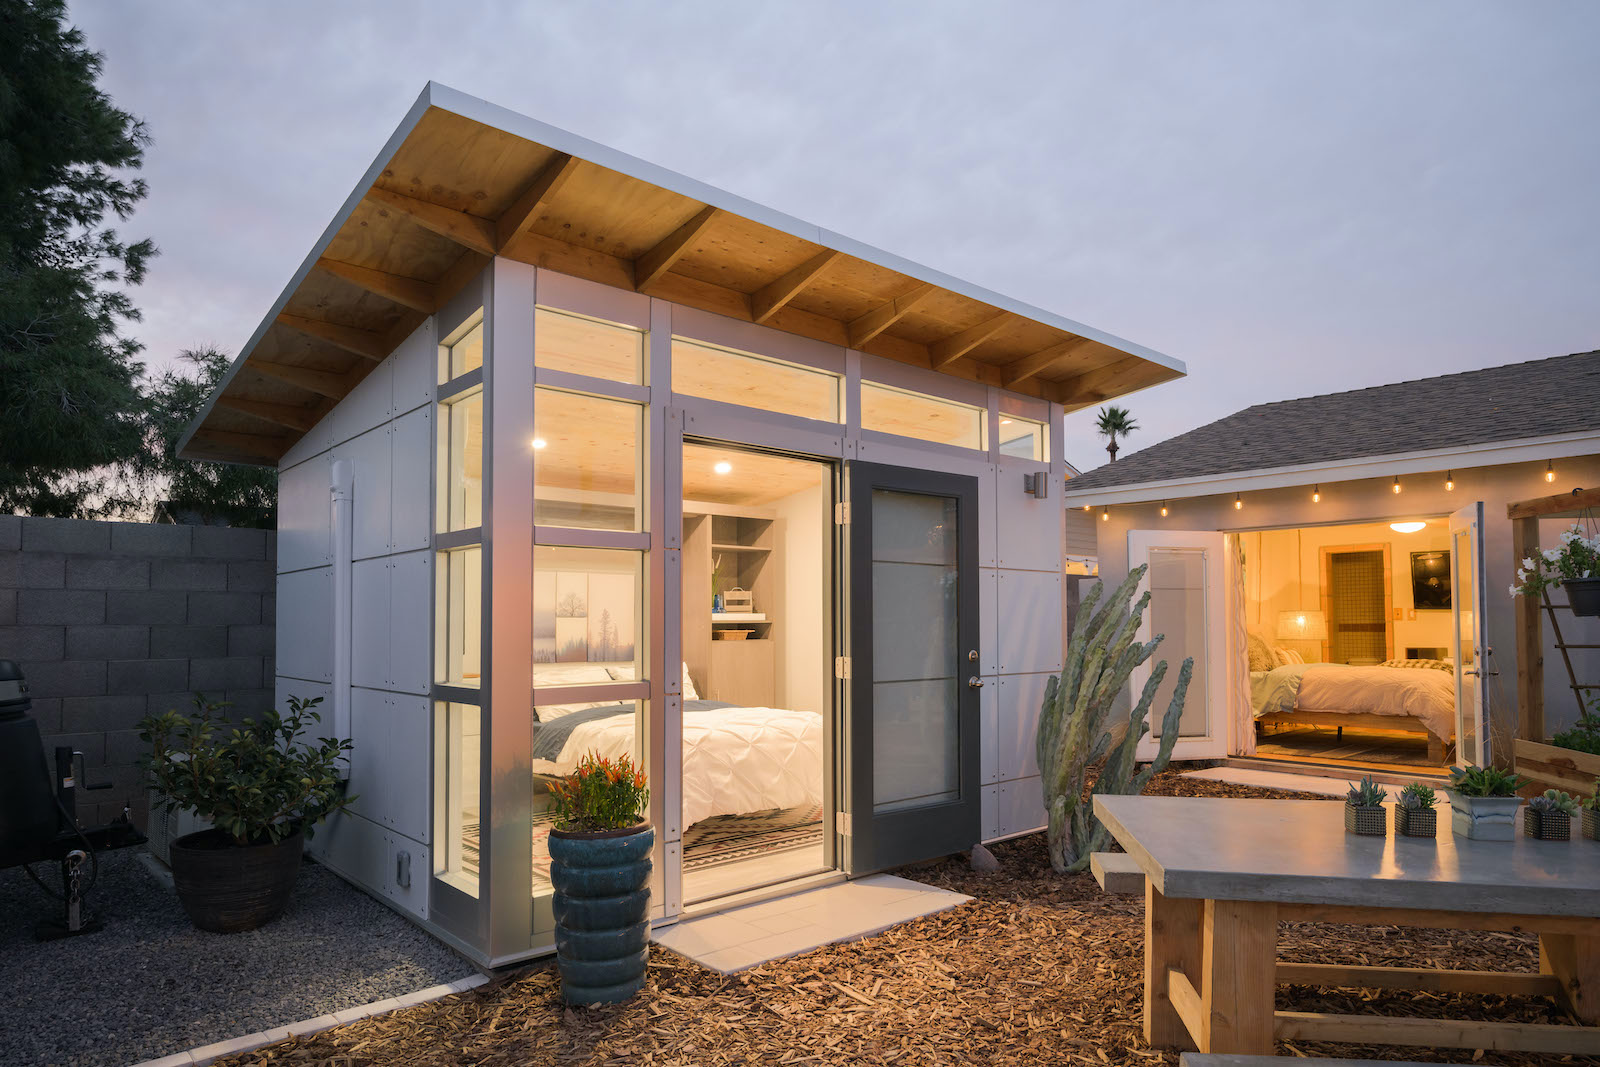 What You Need To Know About Adding A Backyard Studio Shed